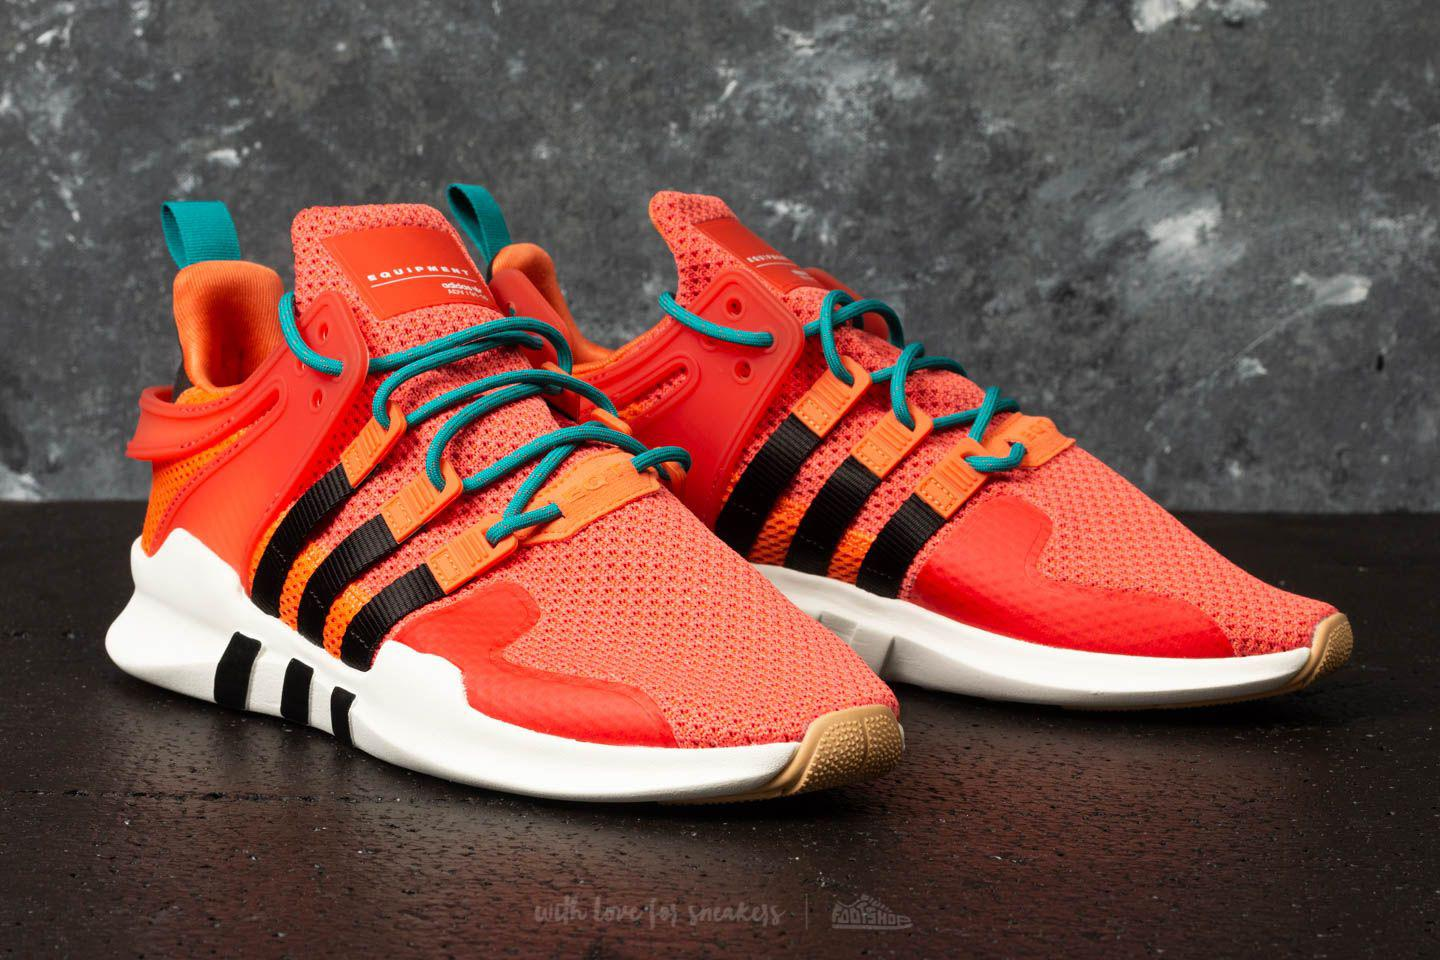 dbe23fe8108a Lyst - adidas Originals Adidas Eqt Support Adv Summer Trace Orange ...